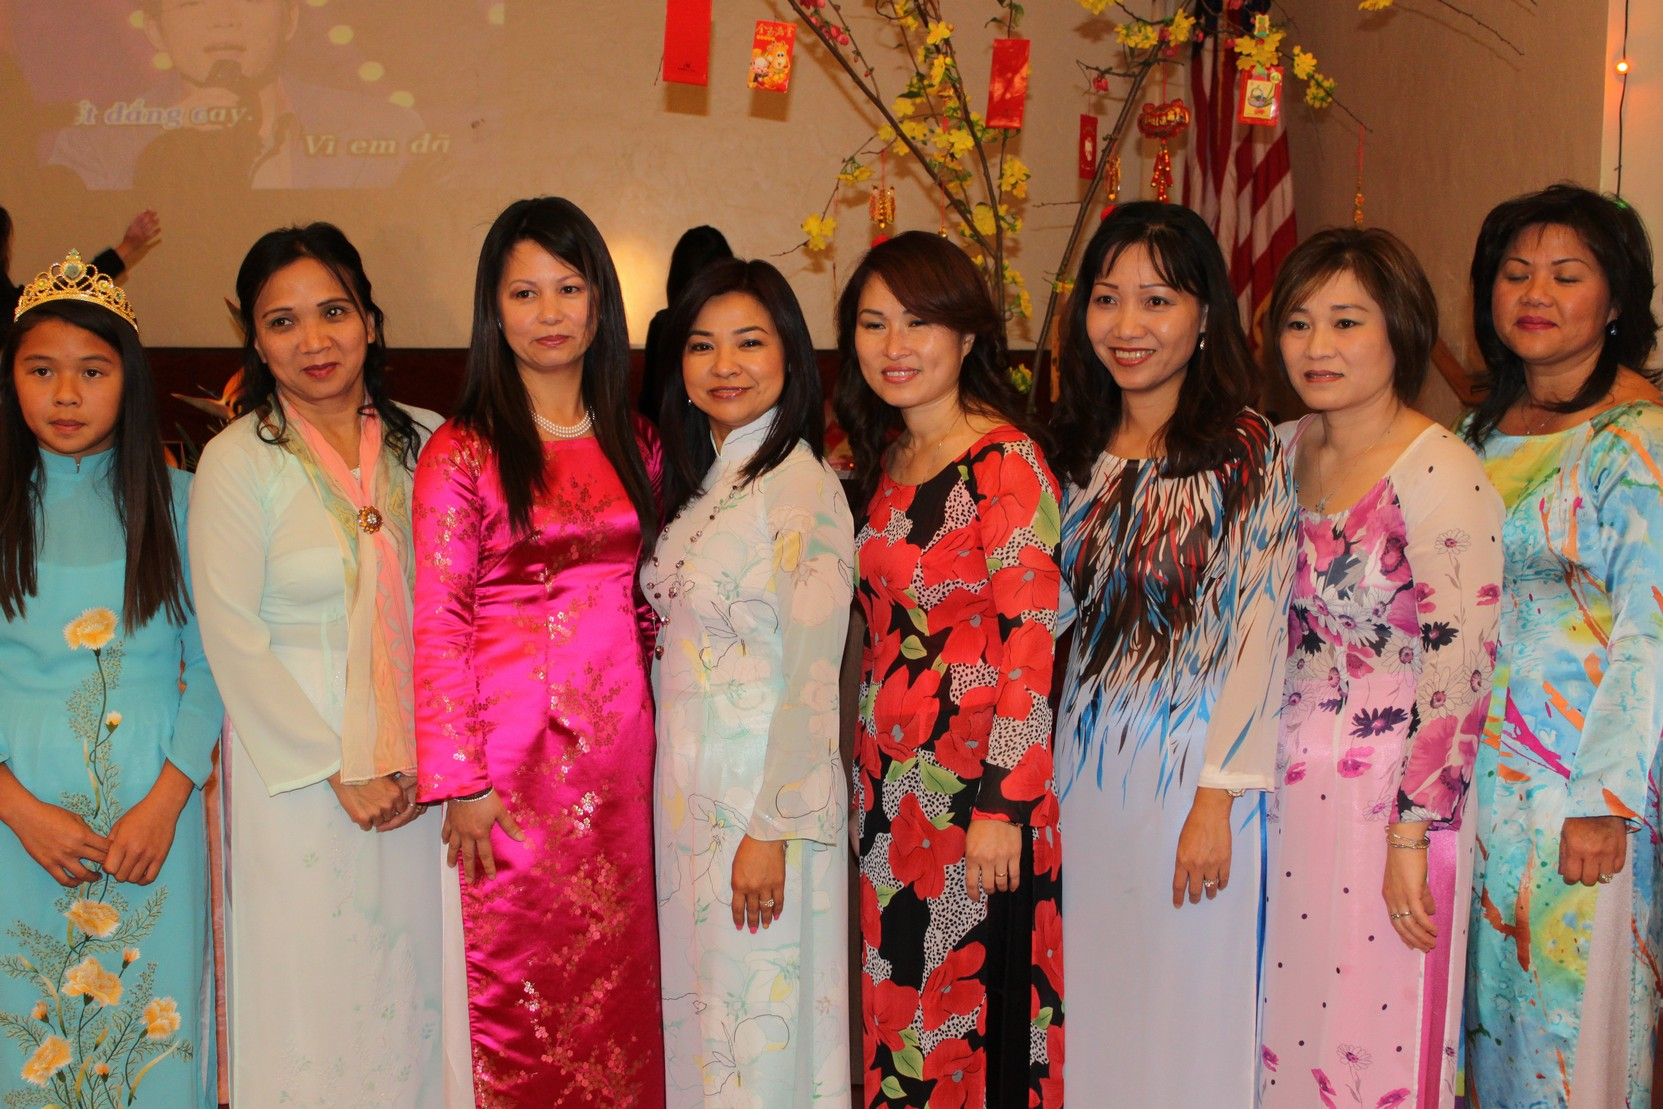 space/pictures/past_years/2014-0118-Tet_Giap_Ngo_Celebration/IMG_5315.jpg -|- Last modified: 2014-01-18 21:00:38